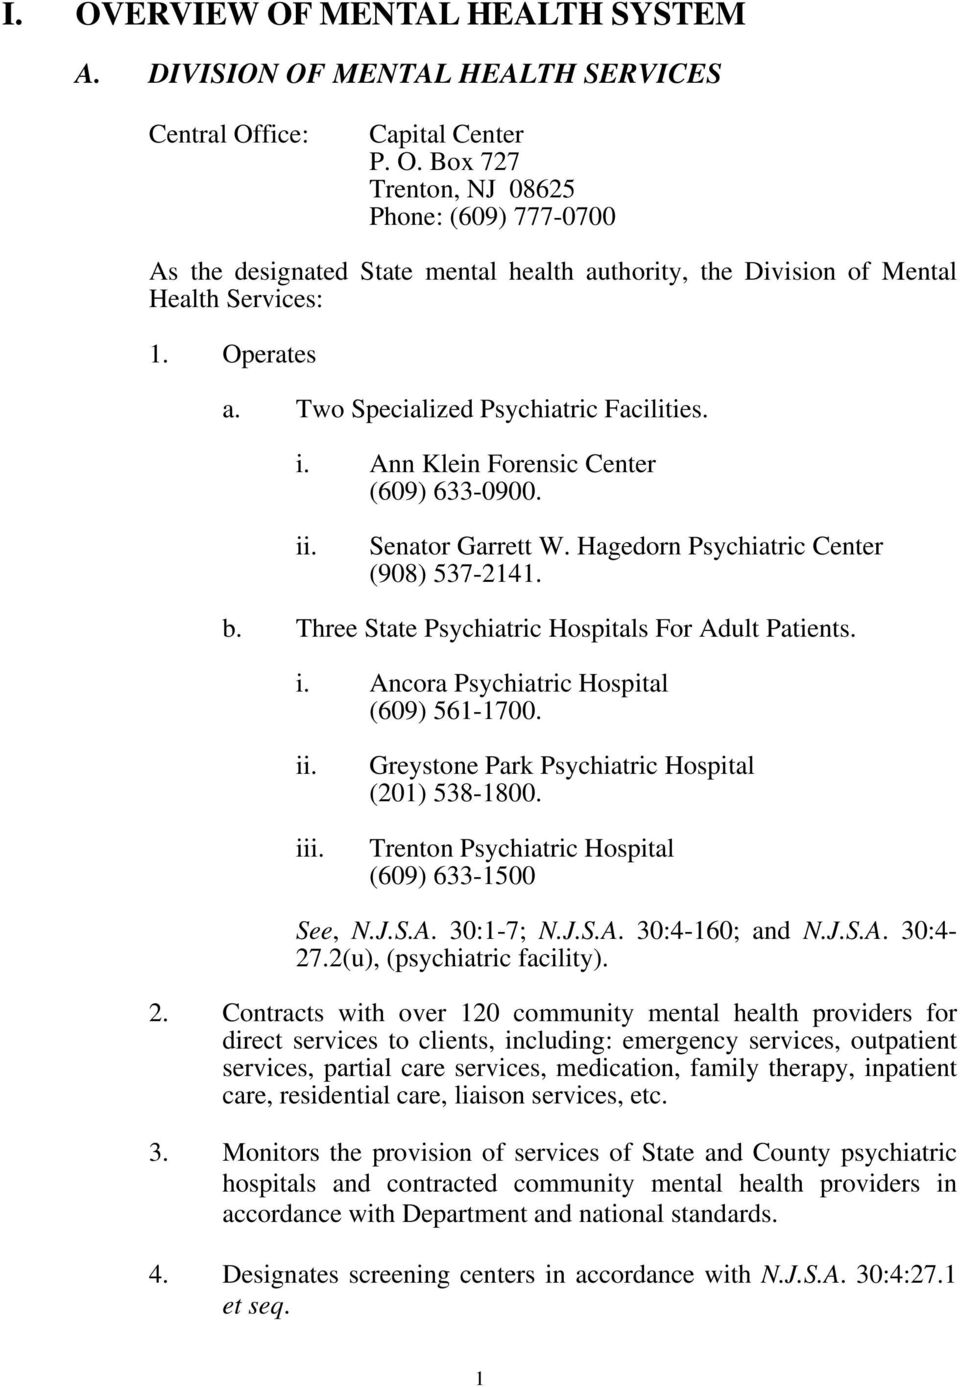 Three State Psychiatric Hospitals For Adult Patients. i. Ancora Psychiatric Hospital (609) 561-1700. ii. iii. Greystone Park Psychiatric Hospital (201) 538-1800.